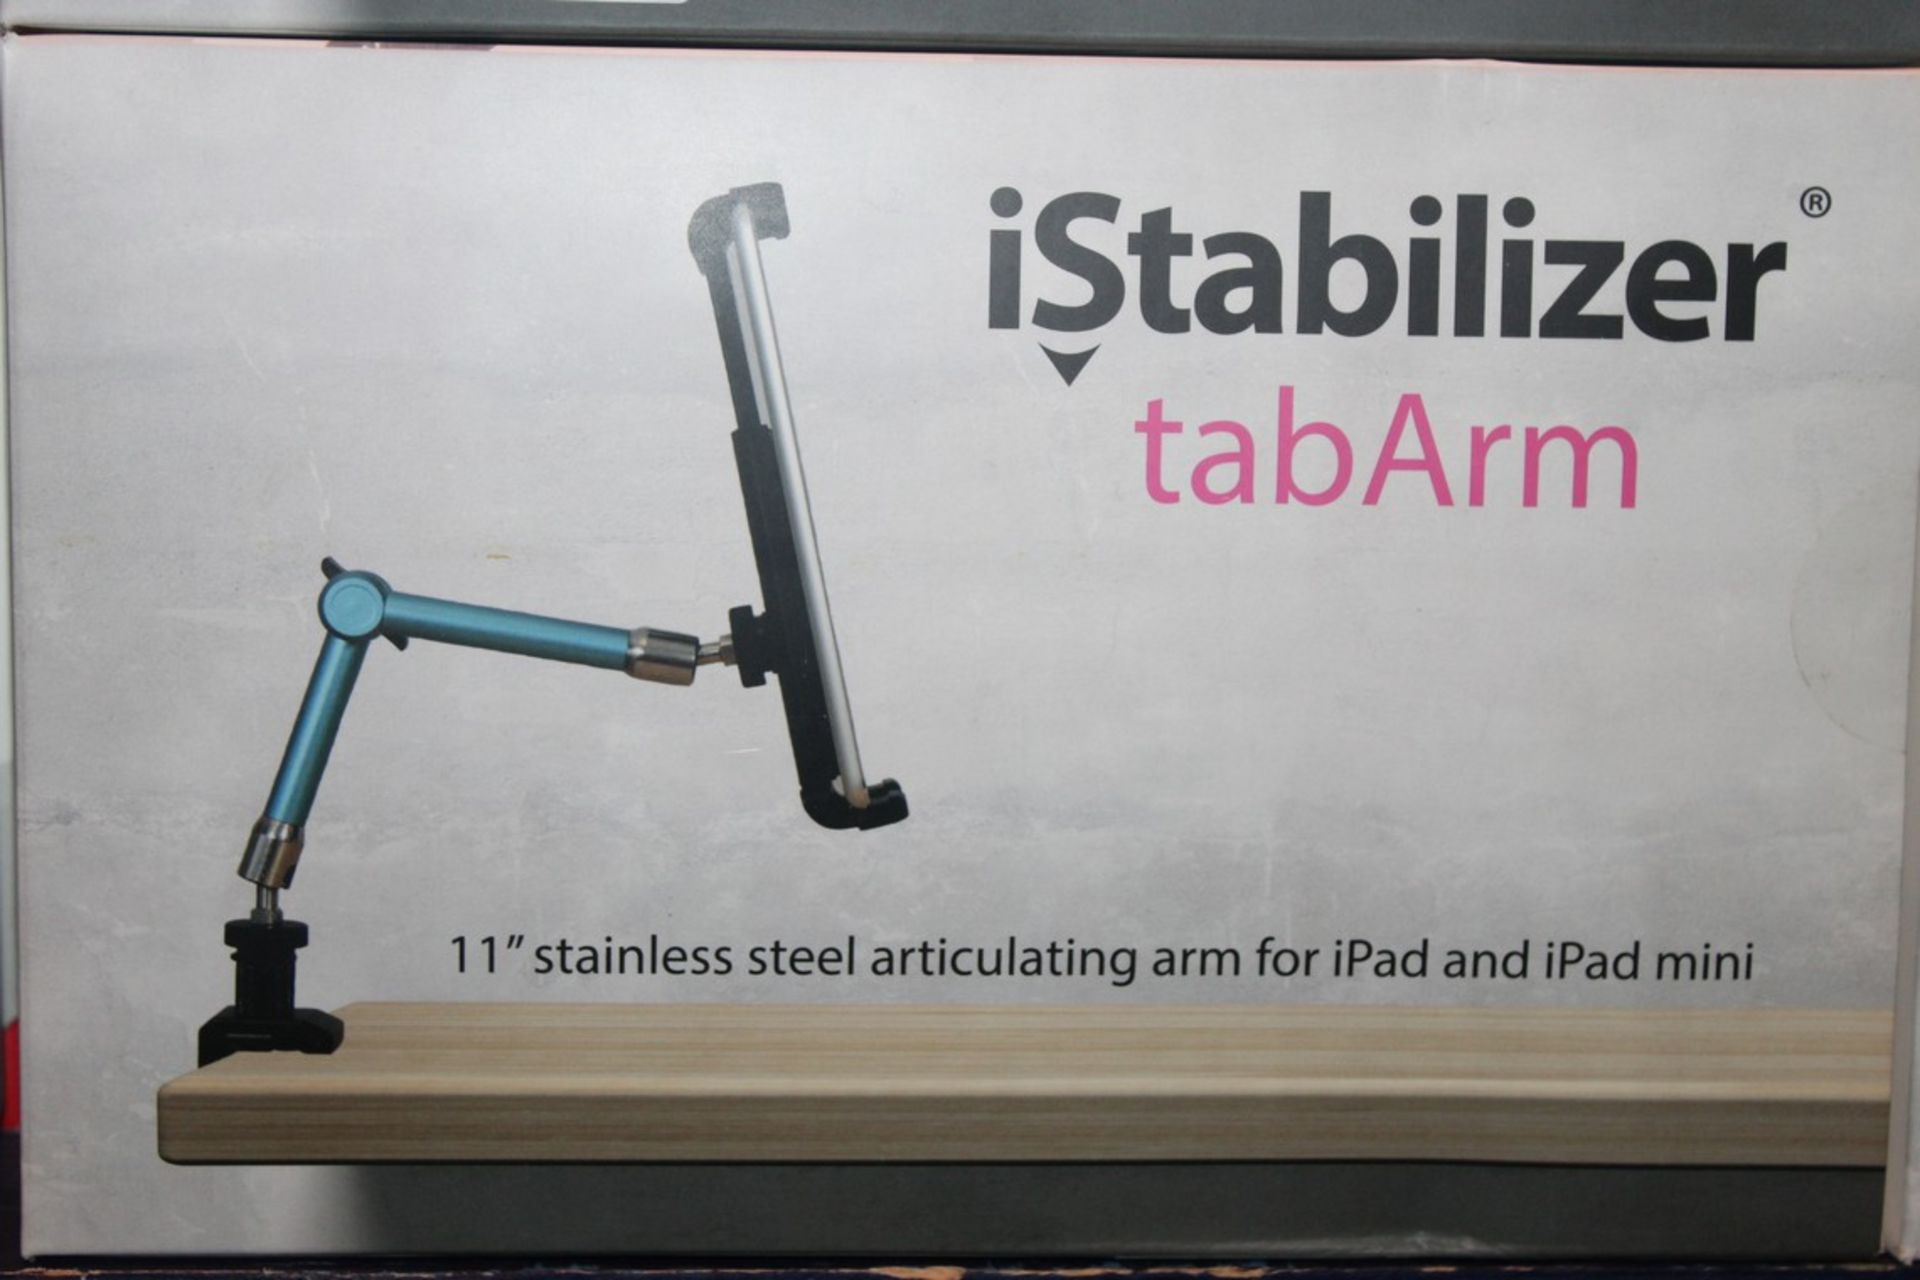 Lot 21 - Lot to Contain 3 I Stabilizer Tab arm 11IN Stainless Steel, Articulating Arm For iPad and iPad Mini,